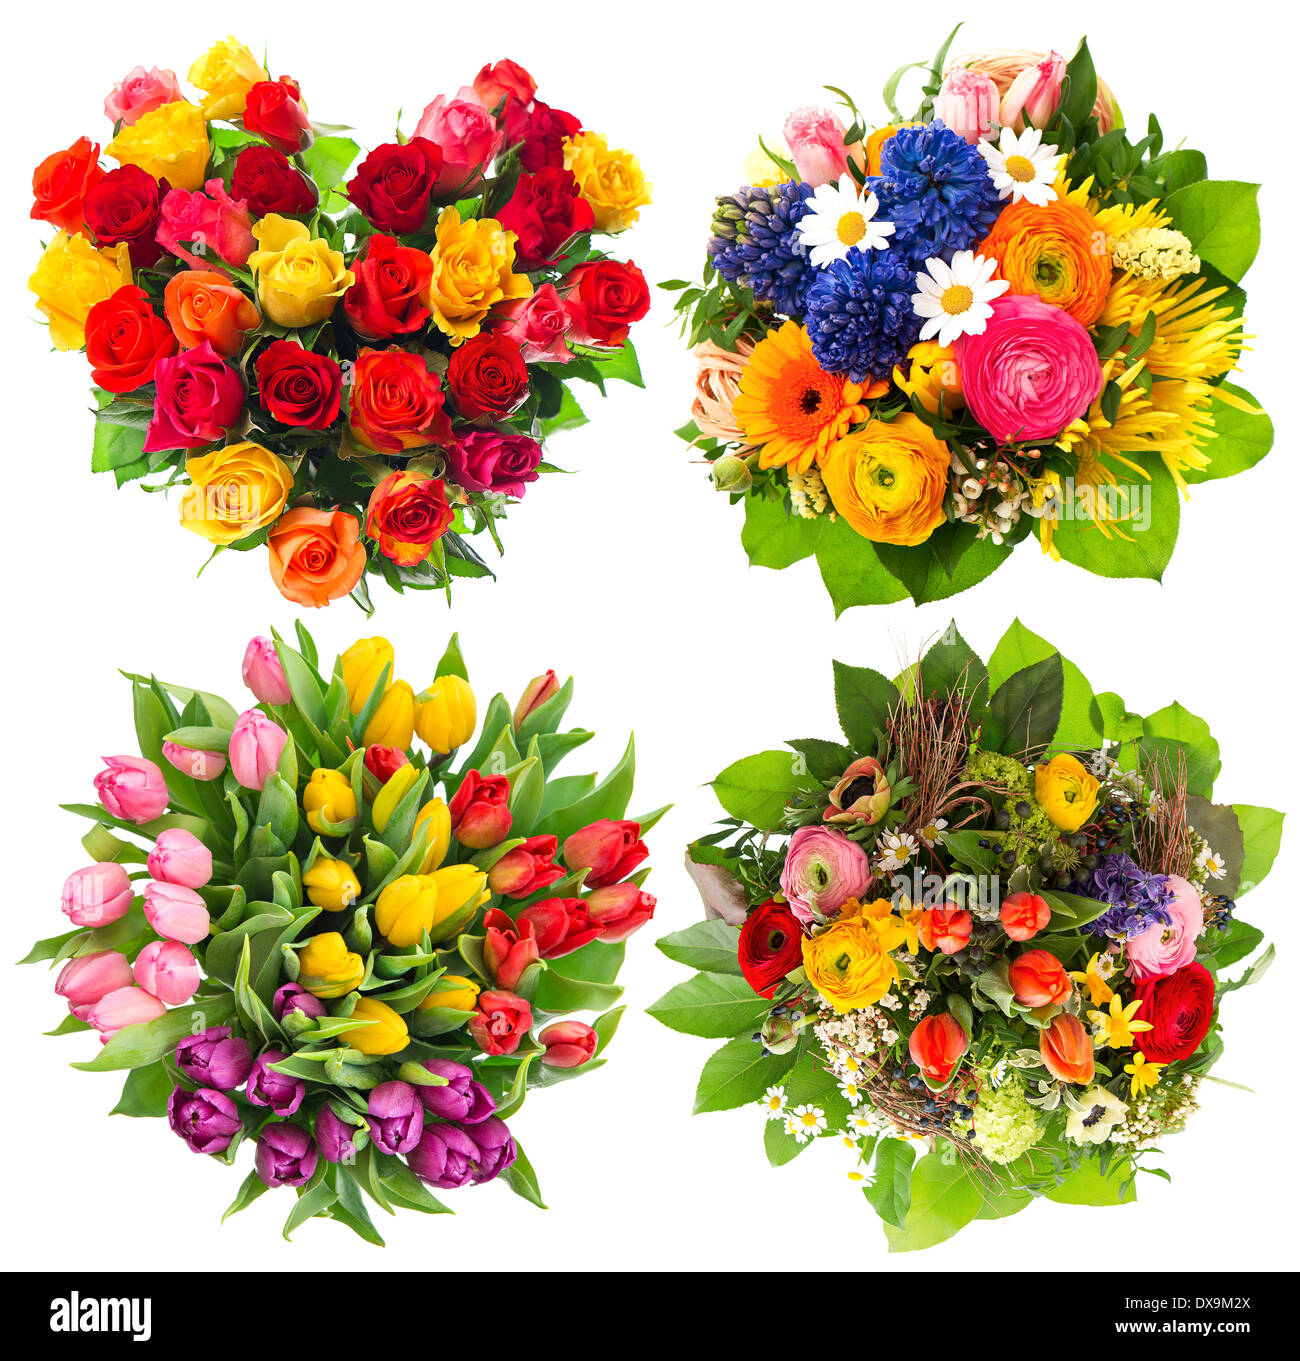 Flower Bouquets For Birthday Valentines Day Mothers Day Easter